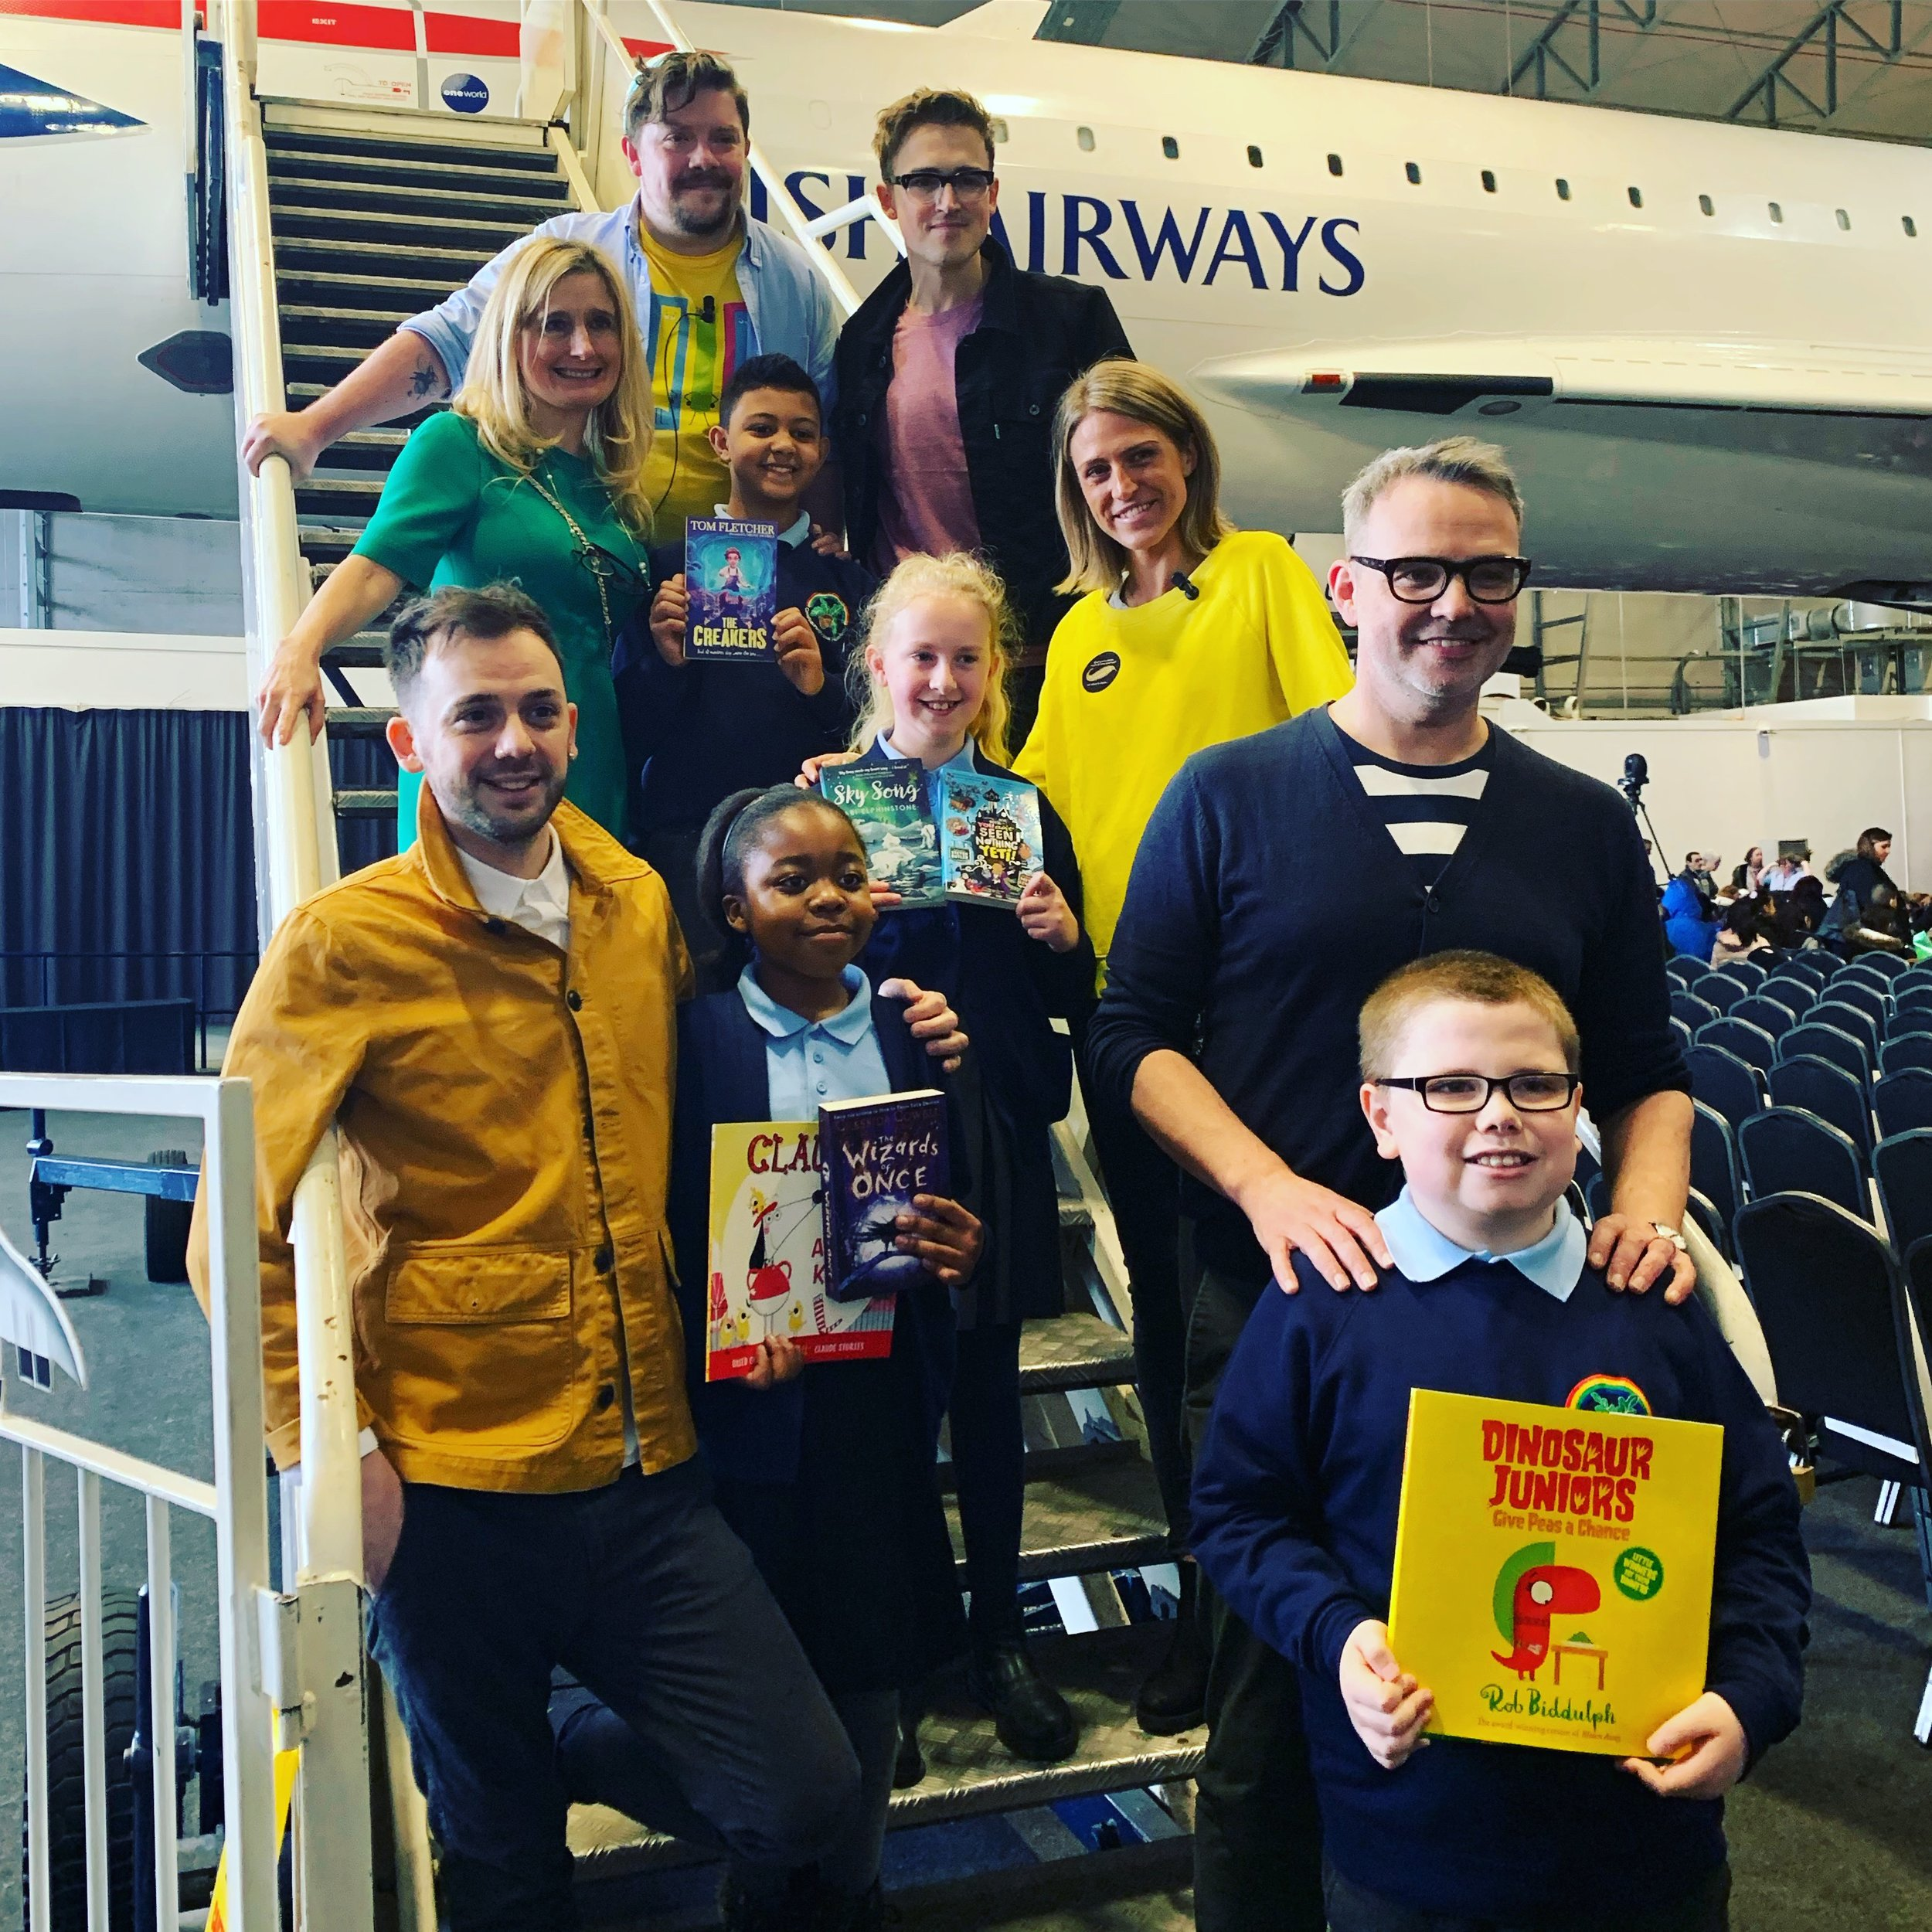 With Steven Butler, Cressida Cowell, Tom Fletcher, Alex T Smith and Abi Elphinstone on the steps of Concorde at our WBD event in Manchester.